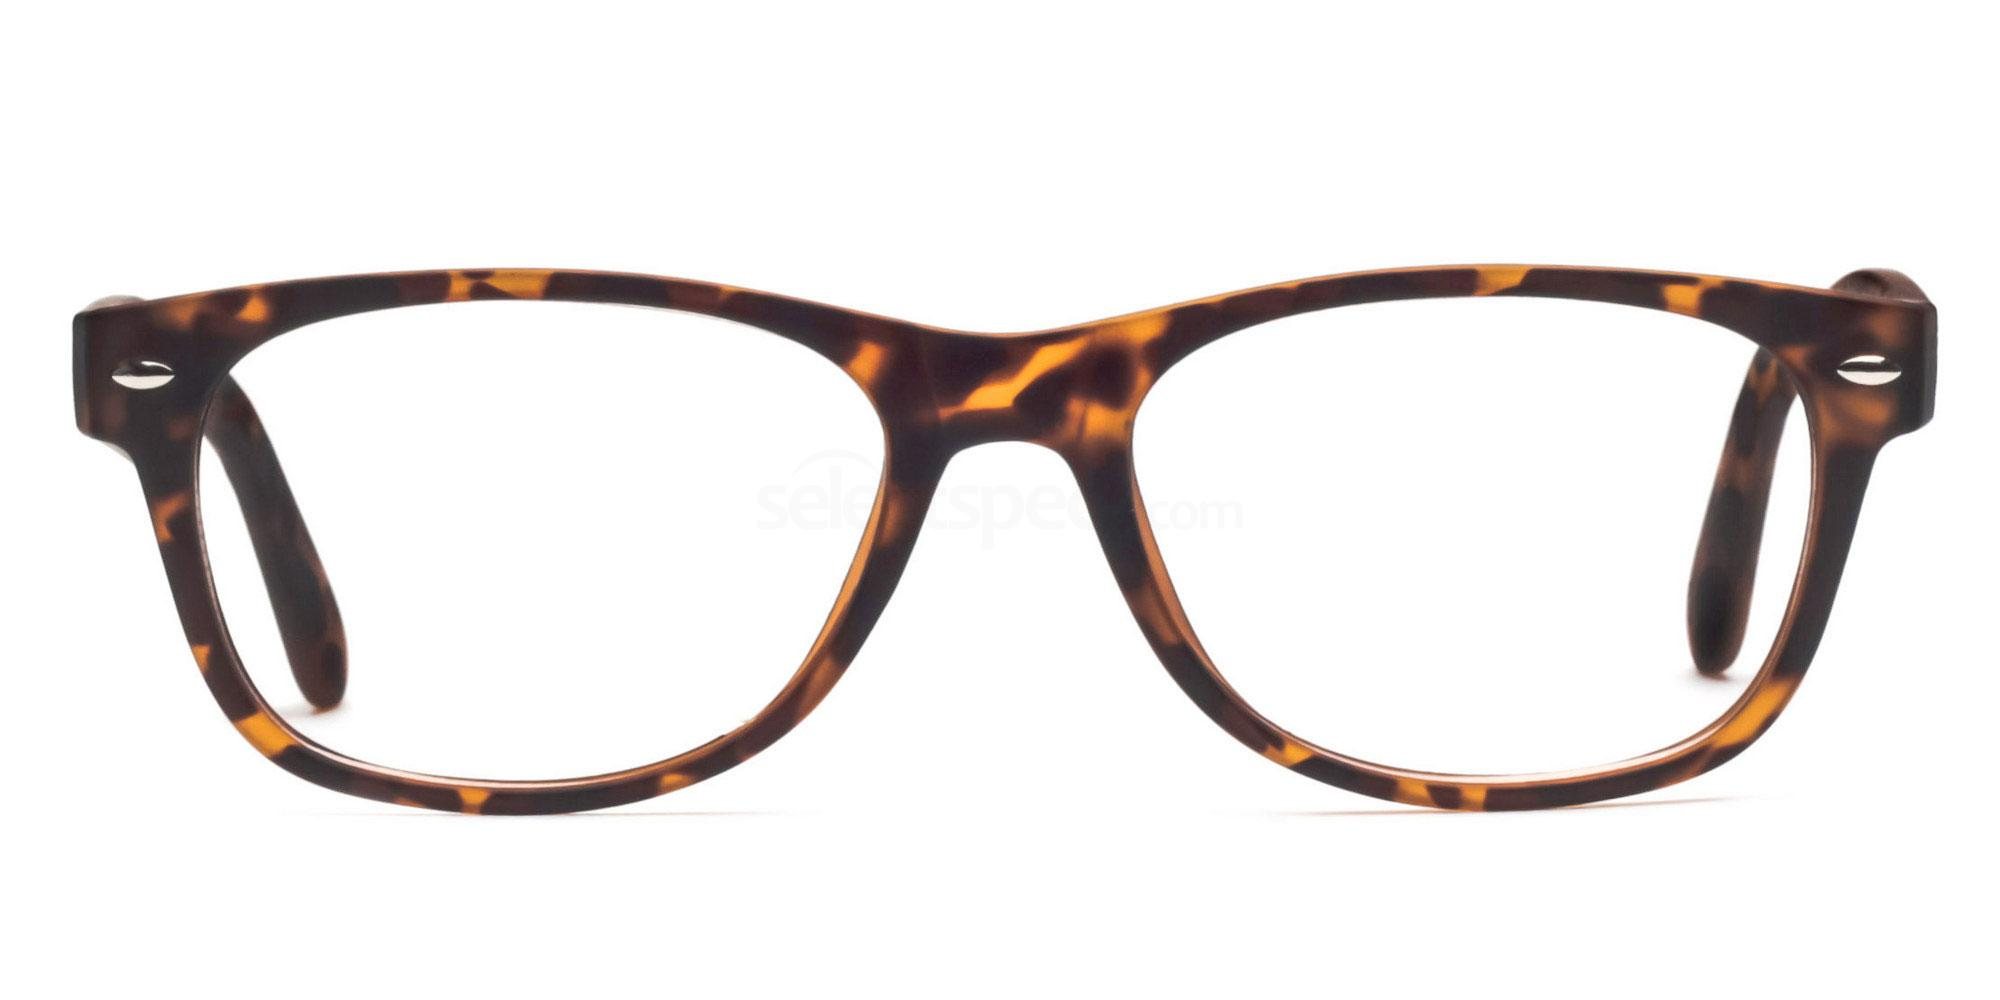 Tortoise 8122 - Tortoise Glasses, Savannah